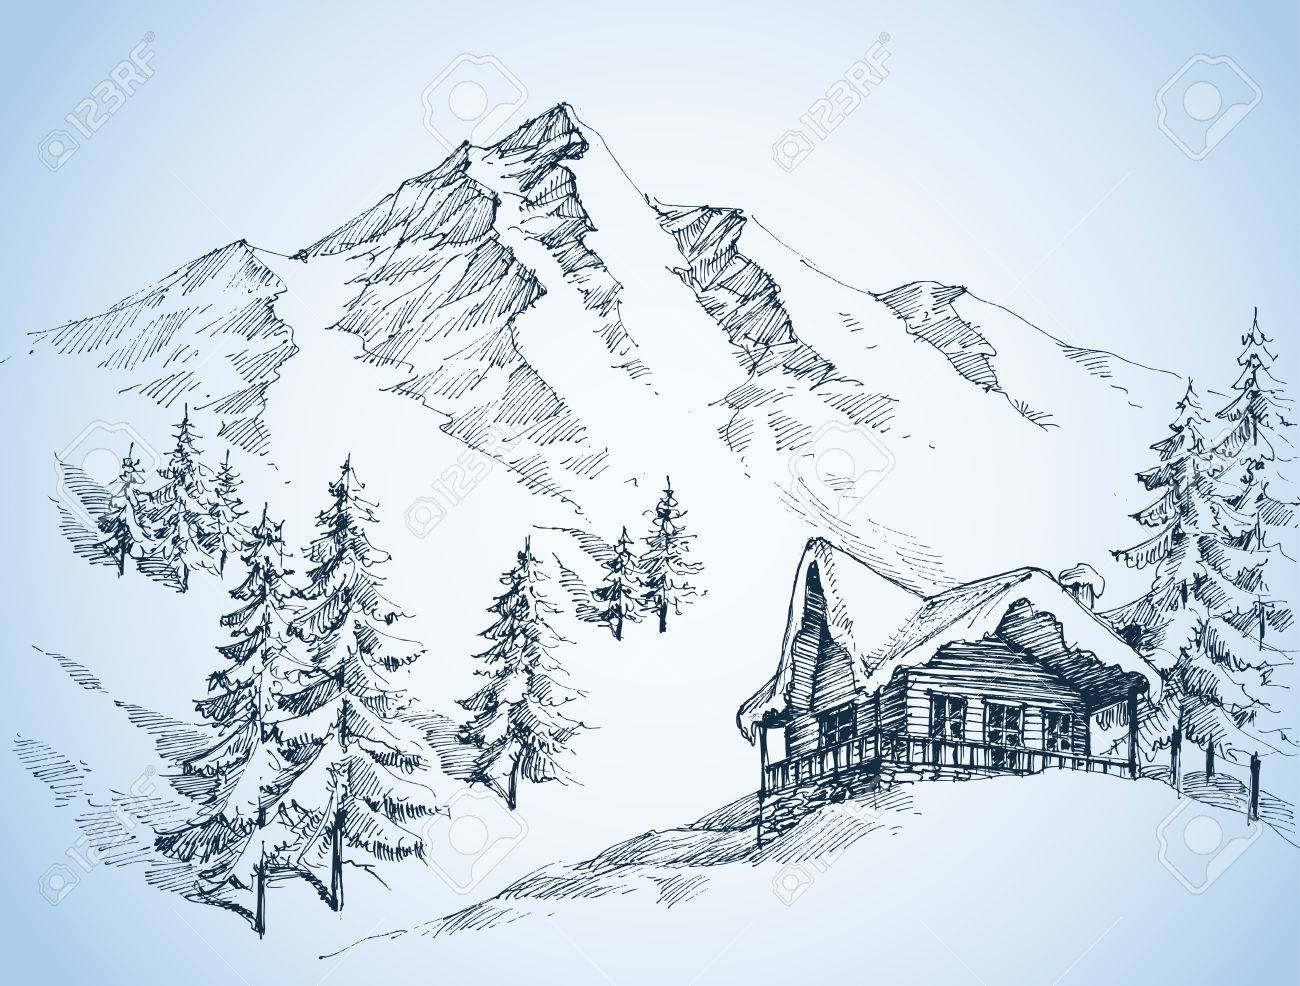 Nature in the mountains sketch, Winter landscape and winter holiday hut - 66936886